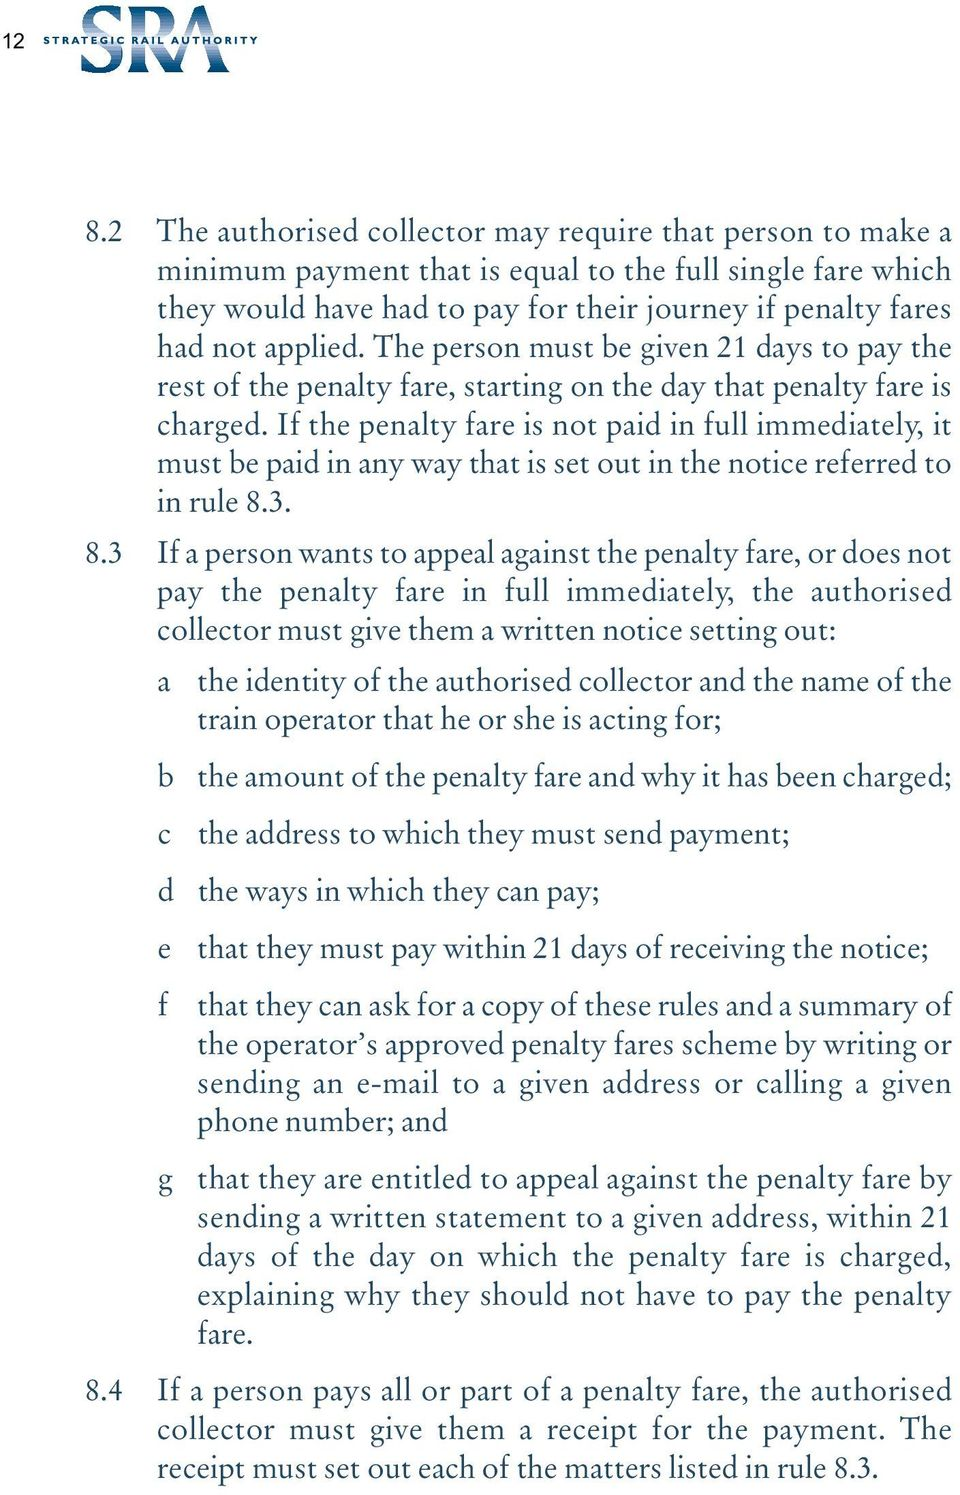 If the penalty fare is not paid in full immediately, it must be paid in any way that is set out in the notice referred to in rule 8.